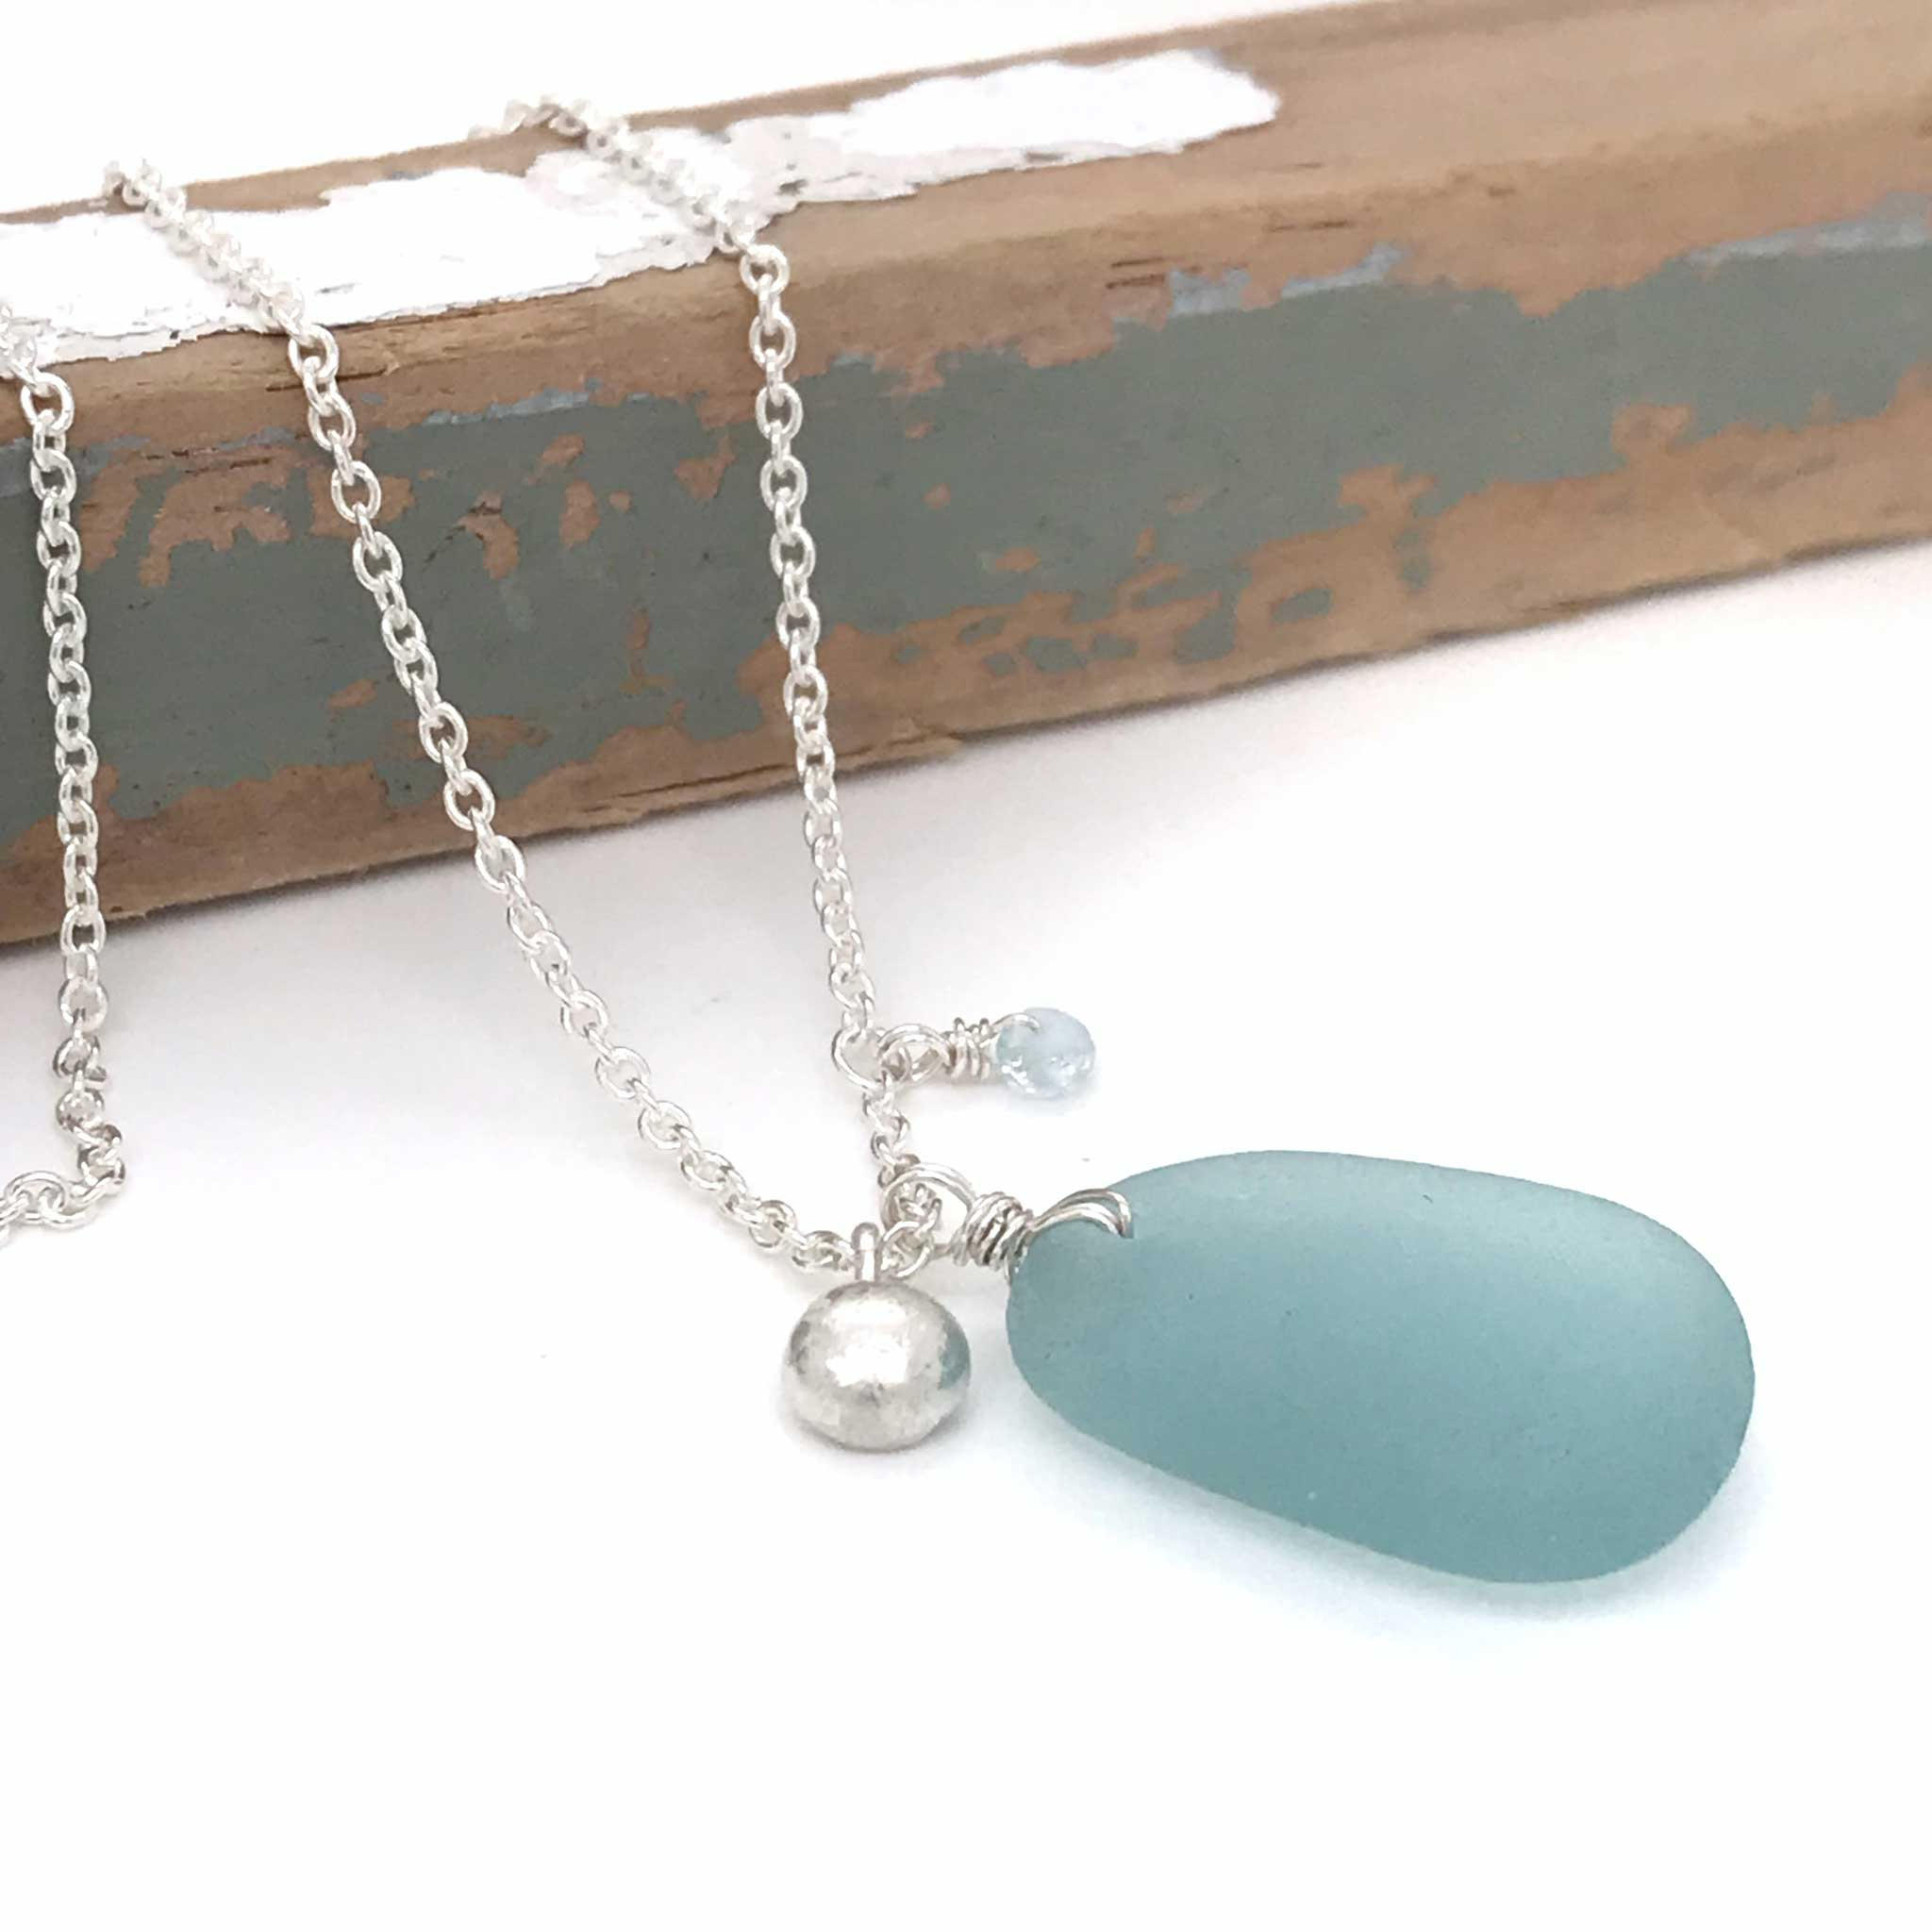 aqua sea glass necklace with solid silver charm kriket broadhurst jewellery Sydney